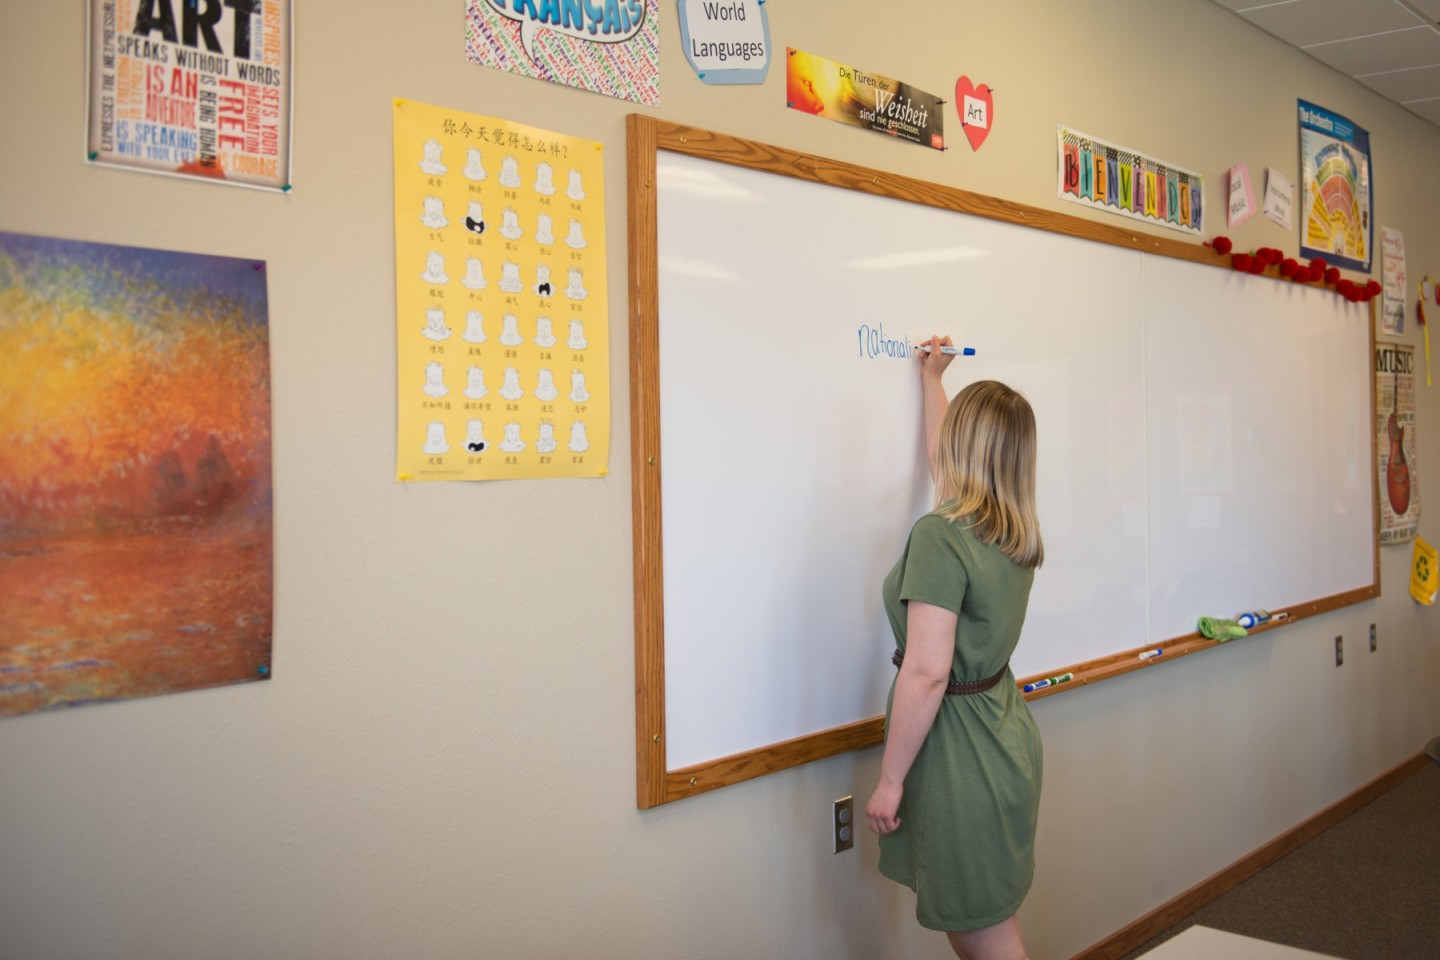 Allison Ross writing on whiteboard in classroom